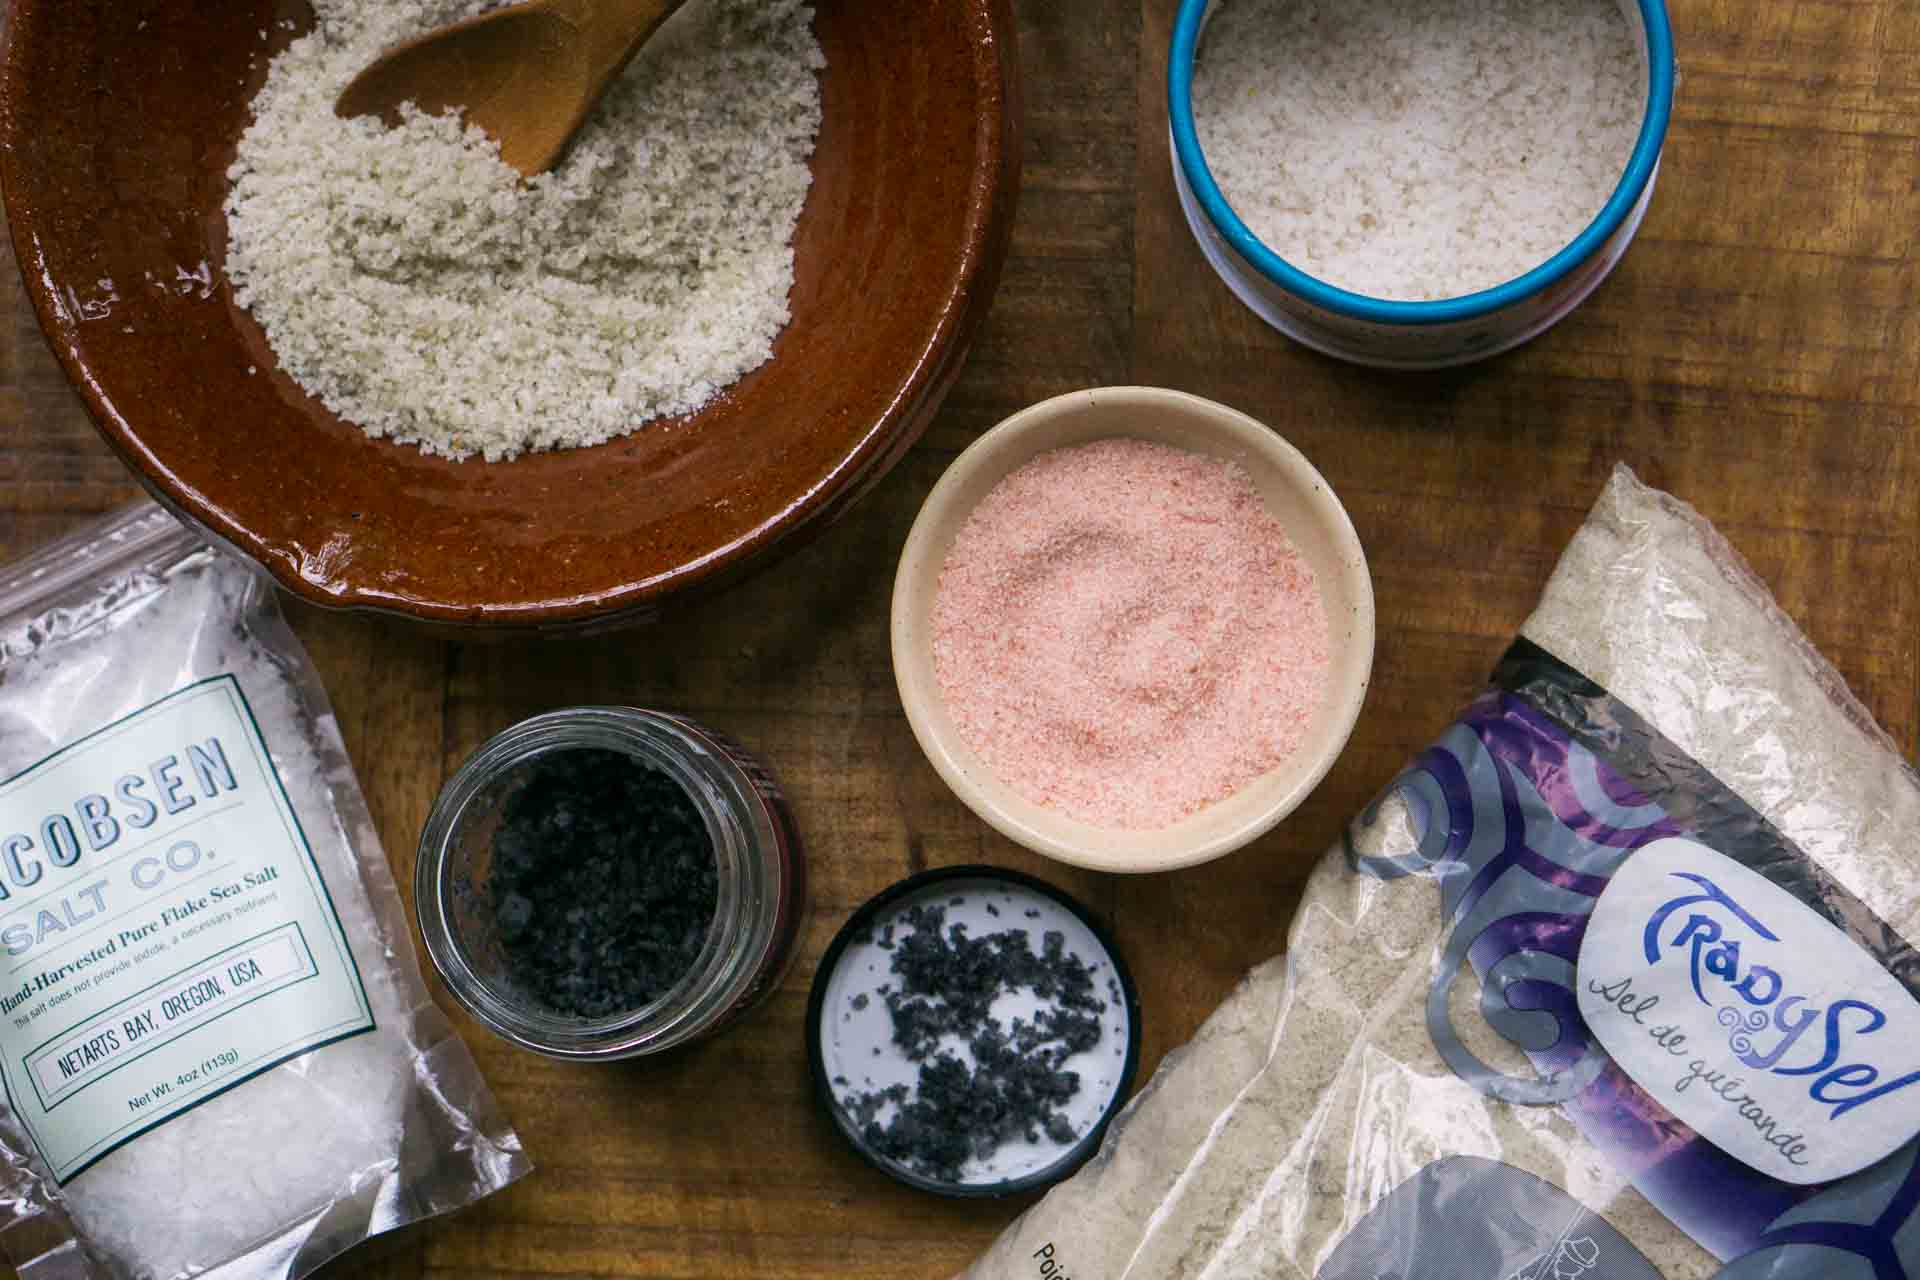 Facts about different kinds of salt for baking and cooking